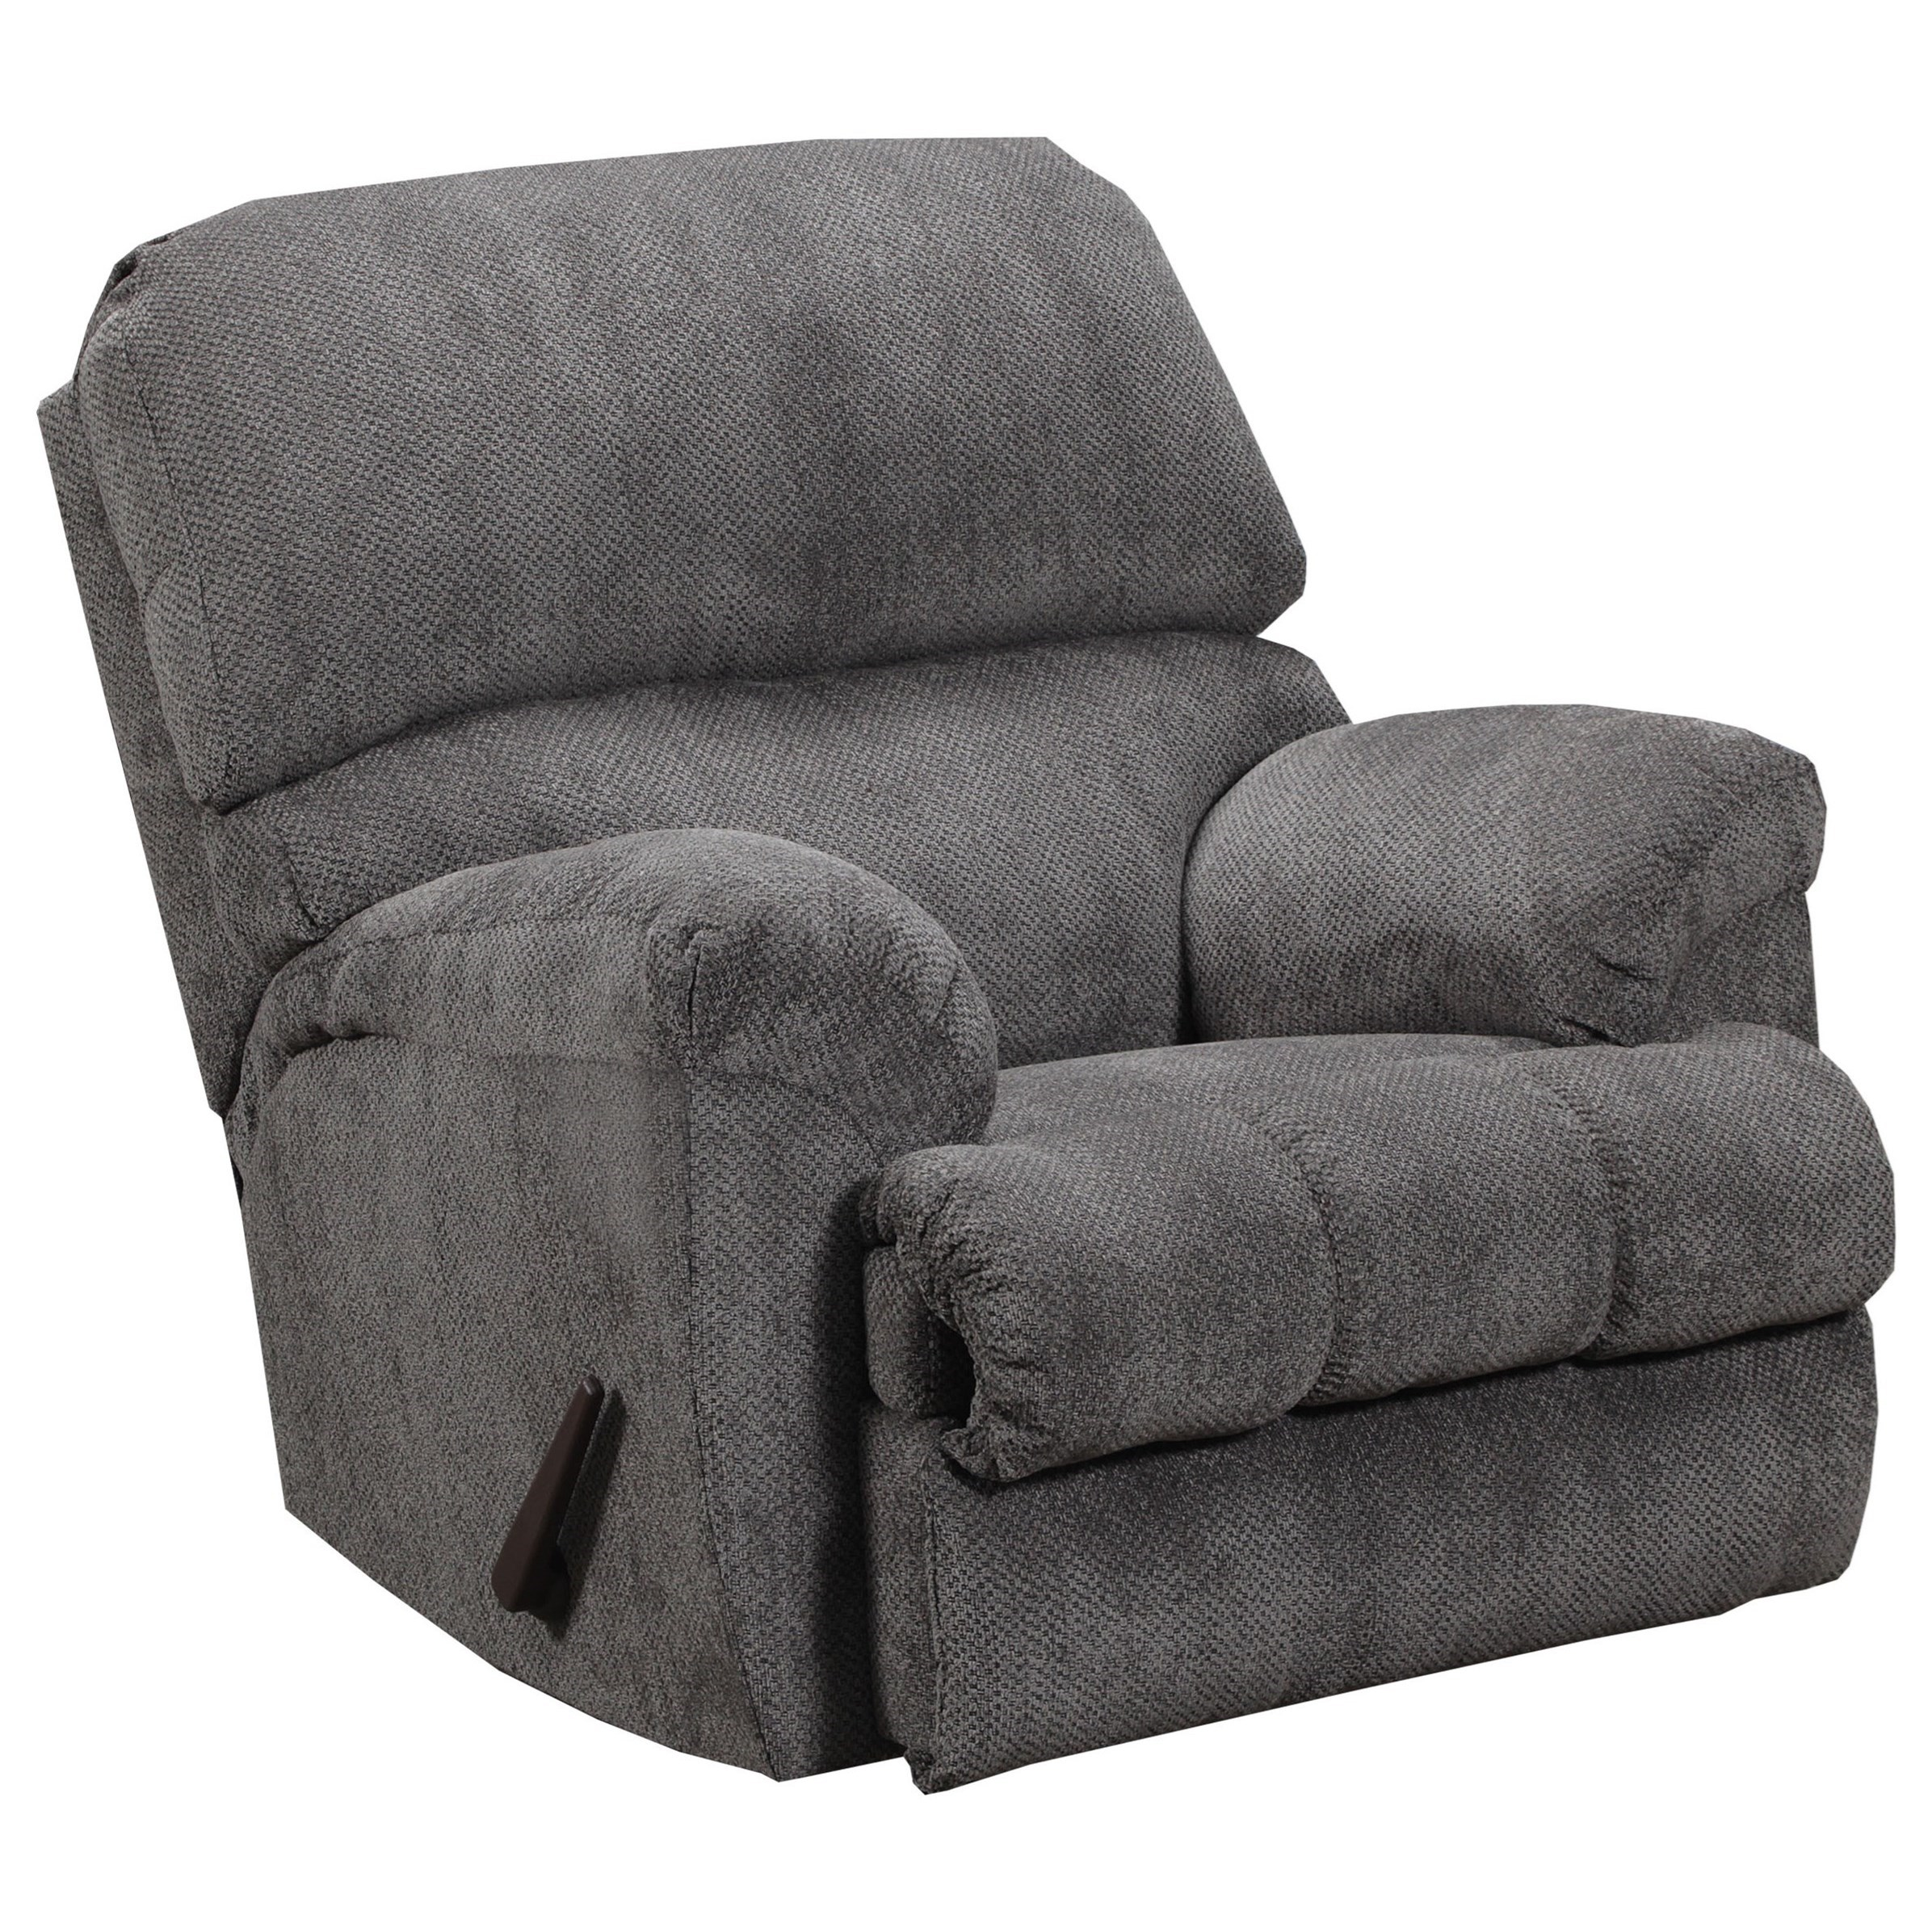 586 Rocker Recliner by United Furniture Industries at Dream Home Interiors